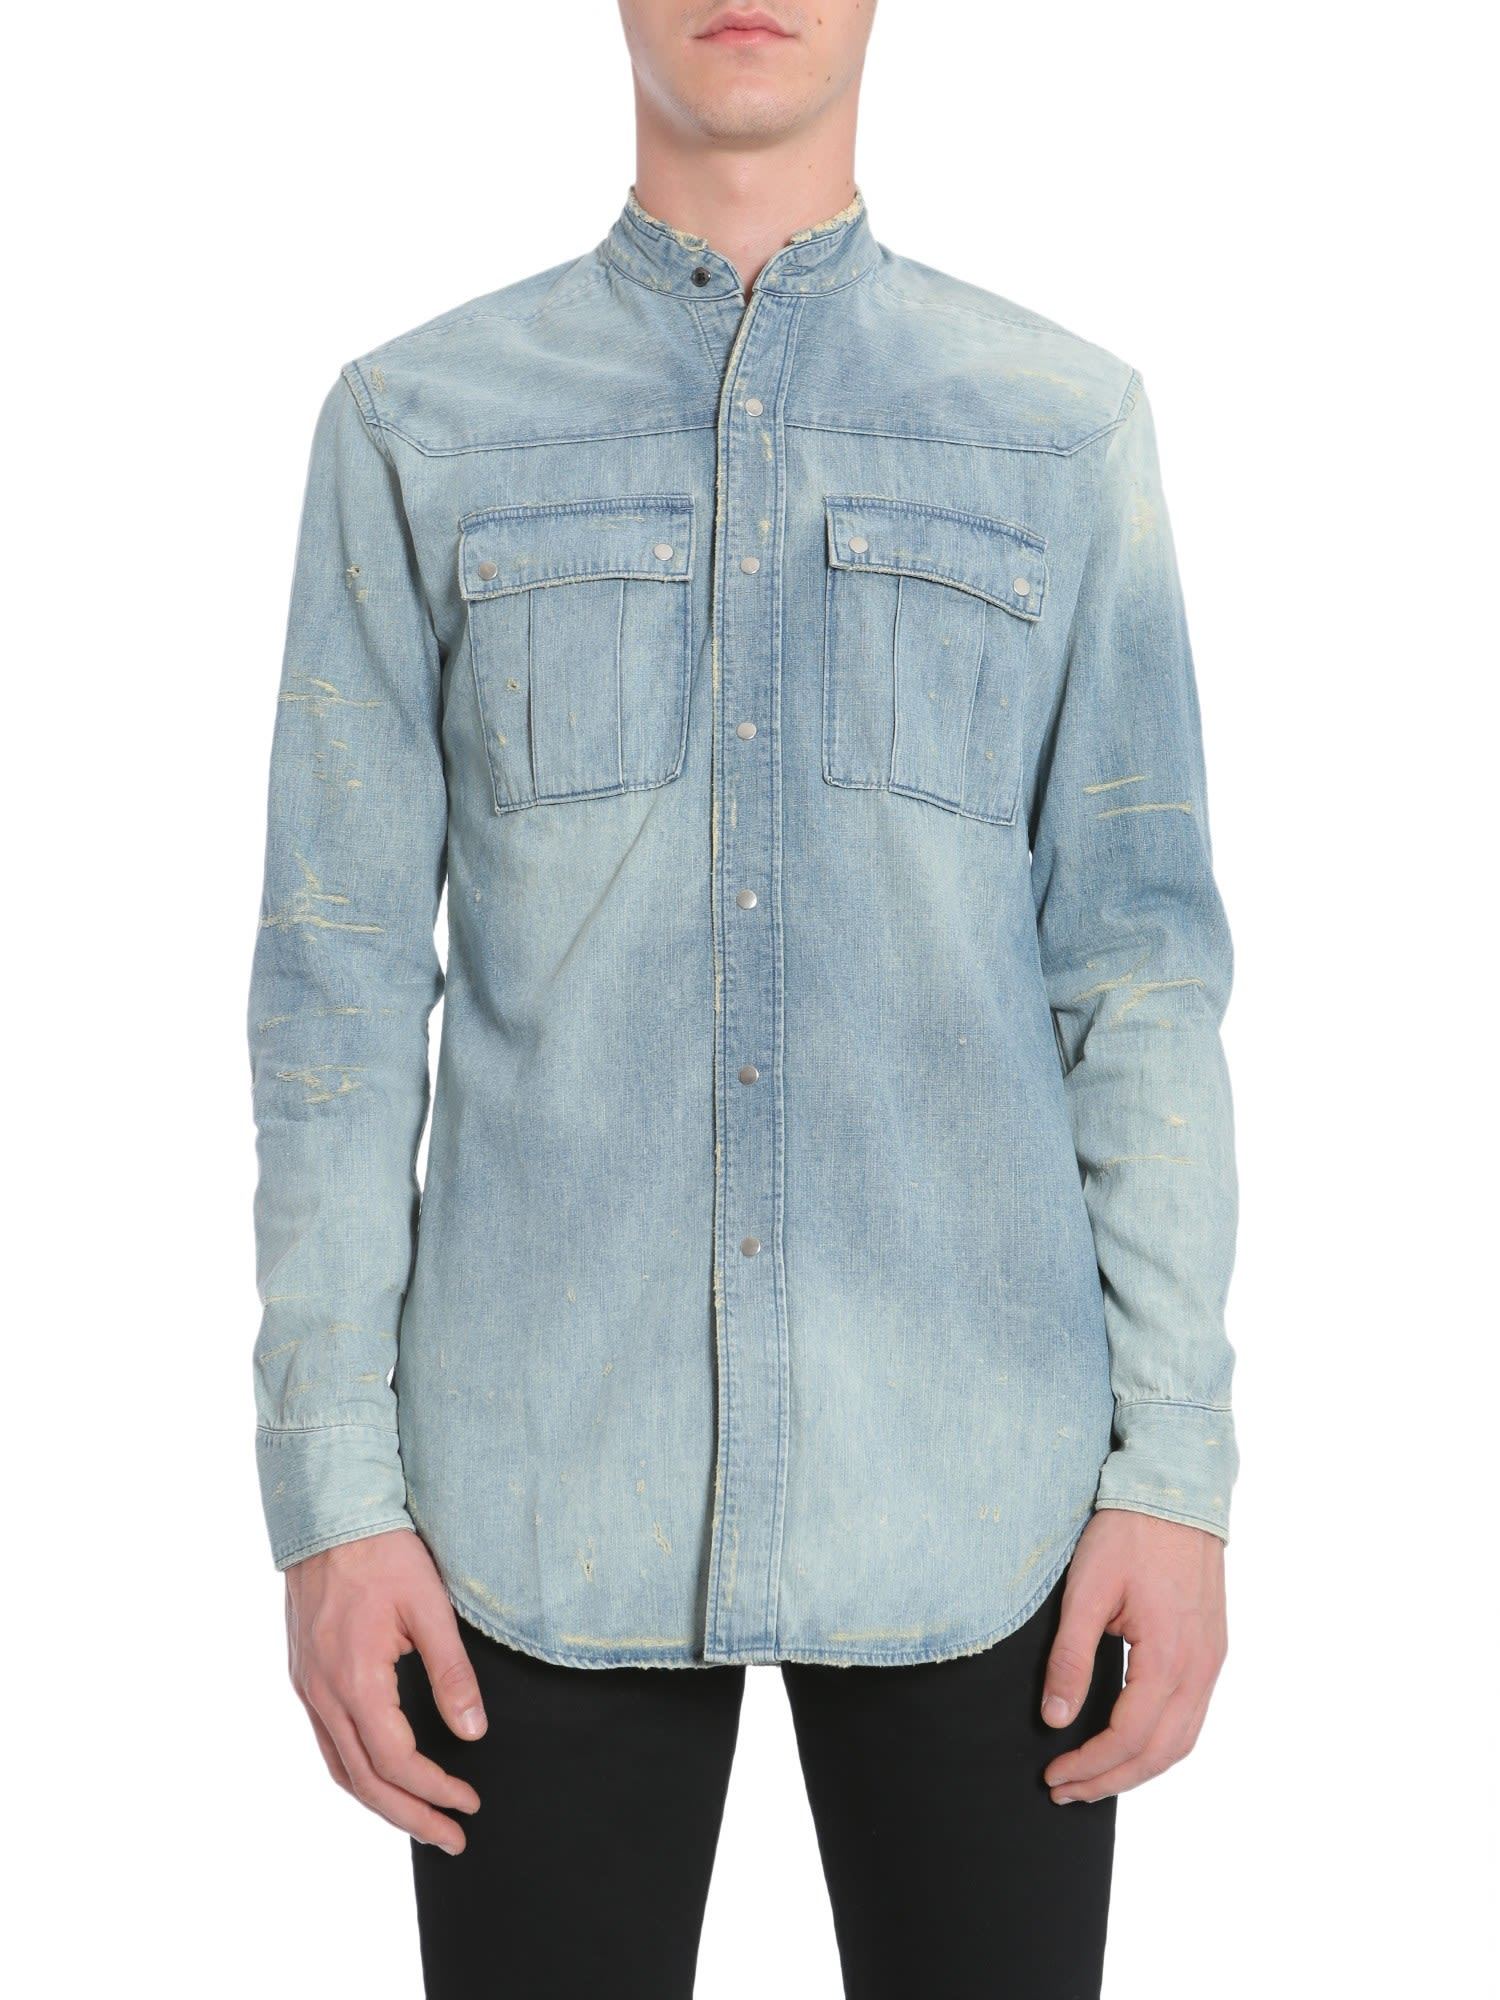 eda6da89 Balmain Balmain Denim Shirt - DENIM - 8511790 | italist